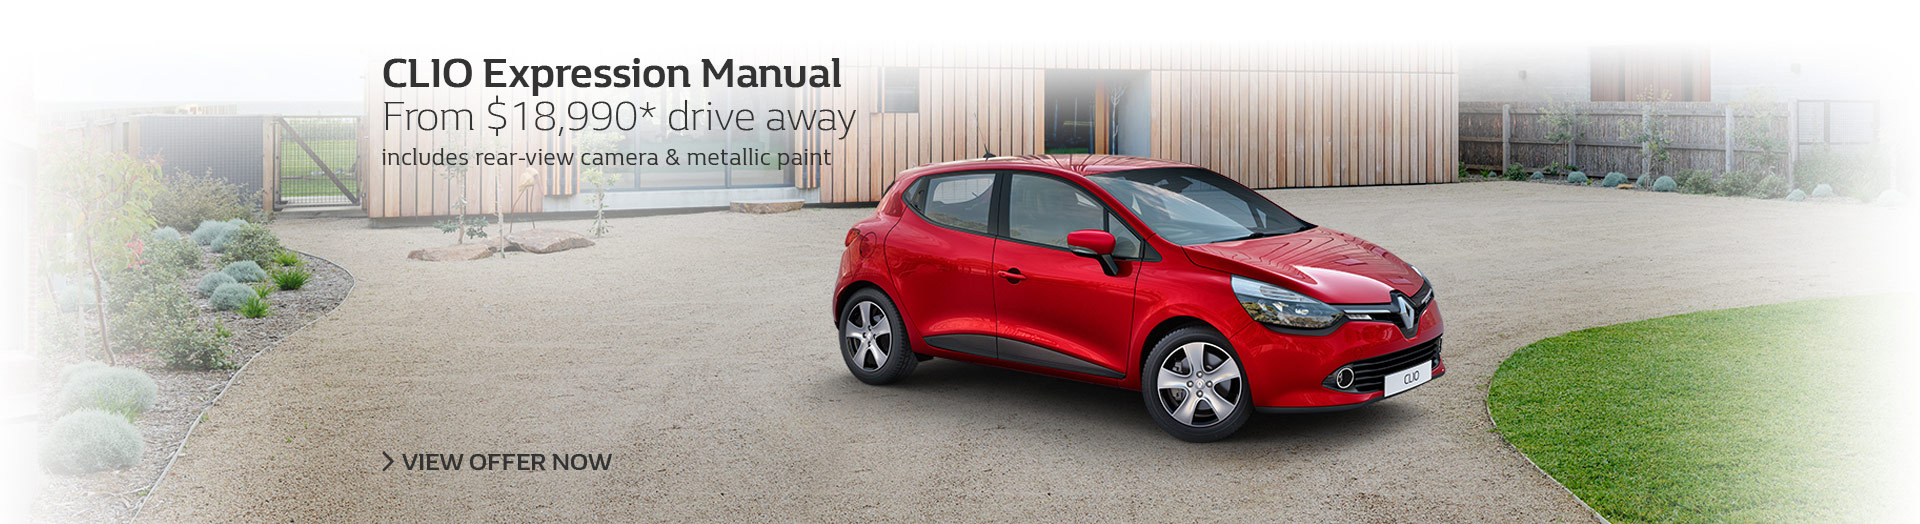 Renault - National Offer - Clio Run Out - From $18,990